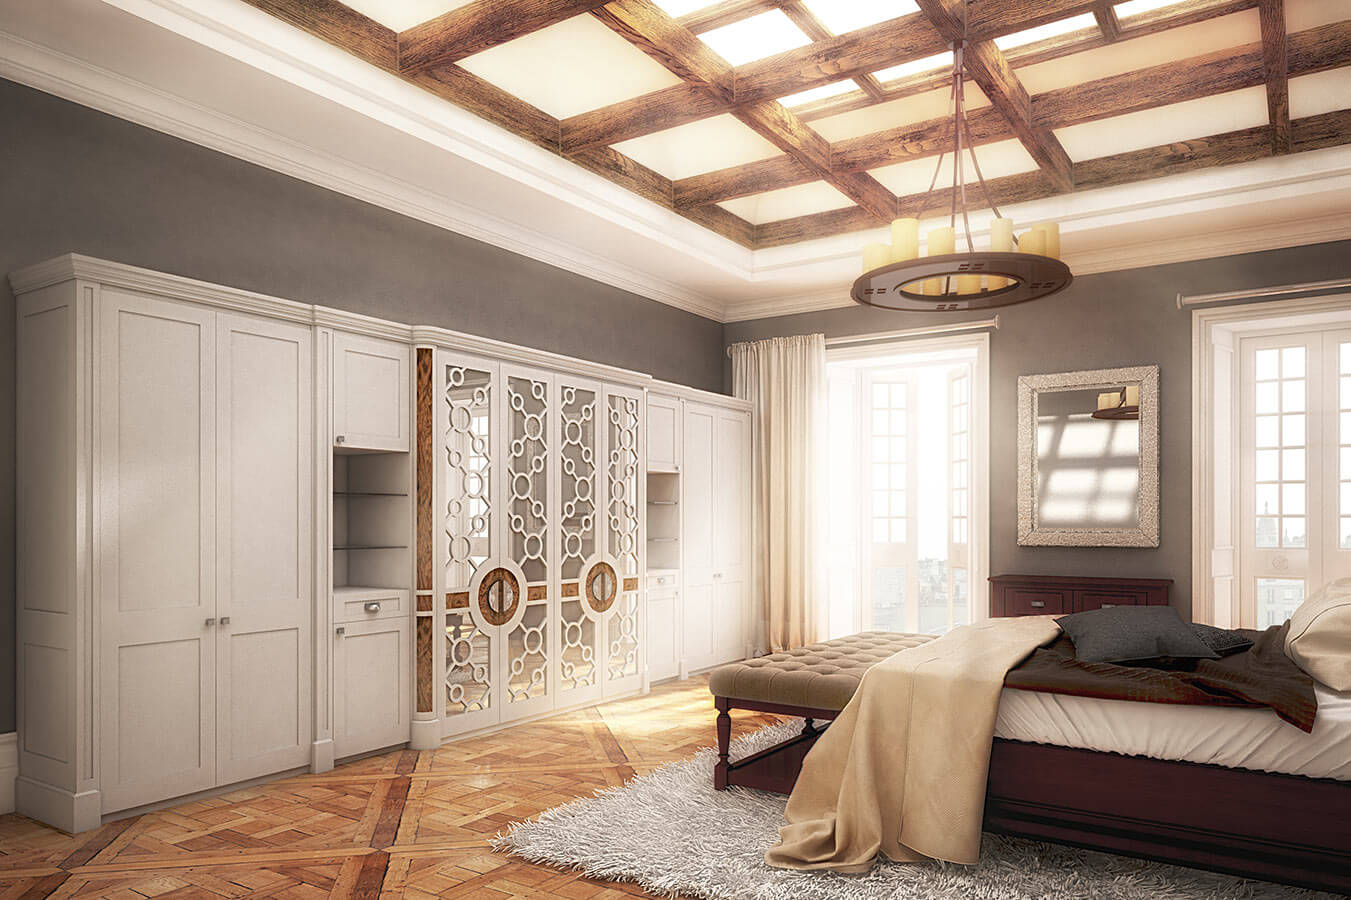 Valerie-range-fitted-bedroom-wardrobes-with-ornate-mirrored-doors-and-walnut-burr-inserts-.jpg